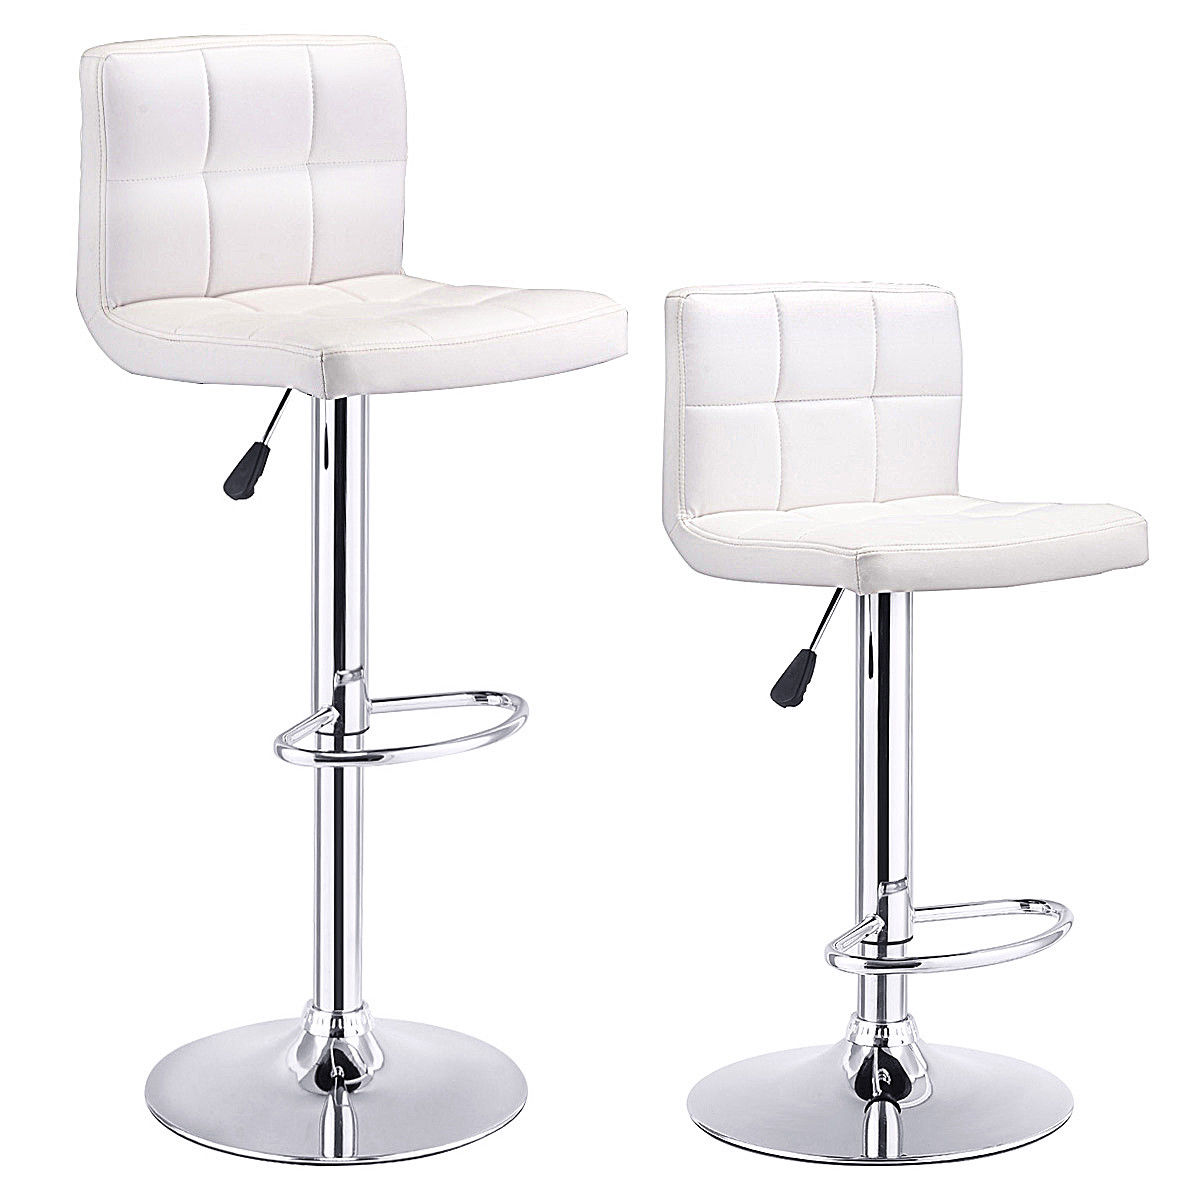 Bar Stool Chairs Costway Set Of 2 Bar Stools Pu Leather Adjustable Barstool Swivel Pub Chairs White